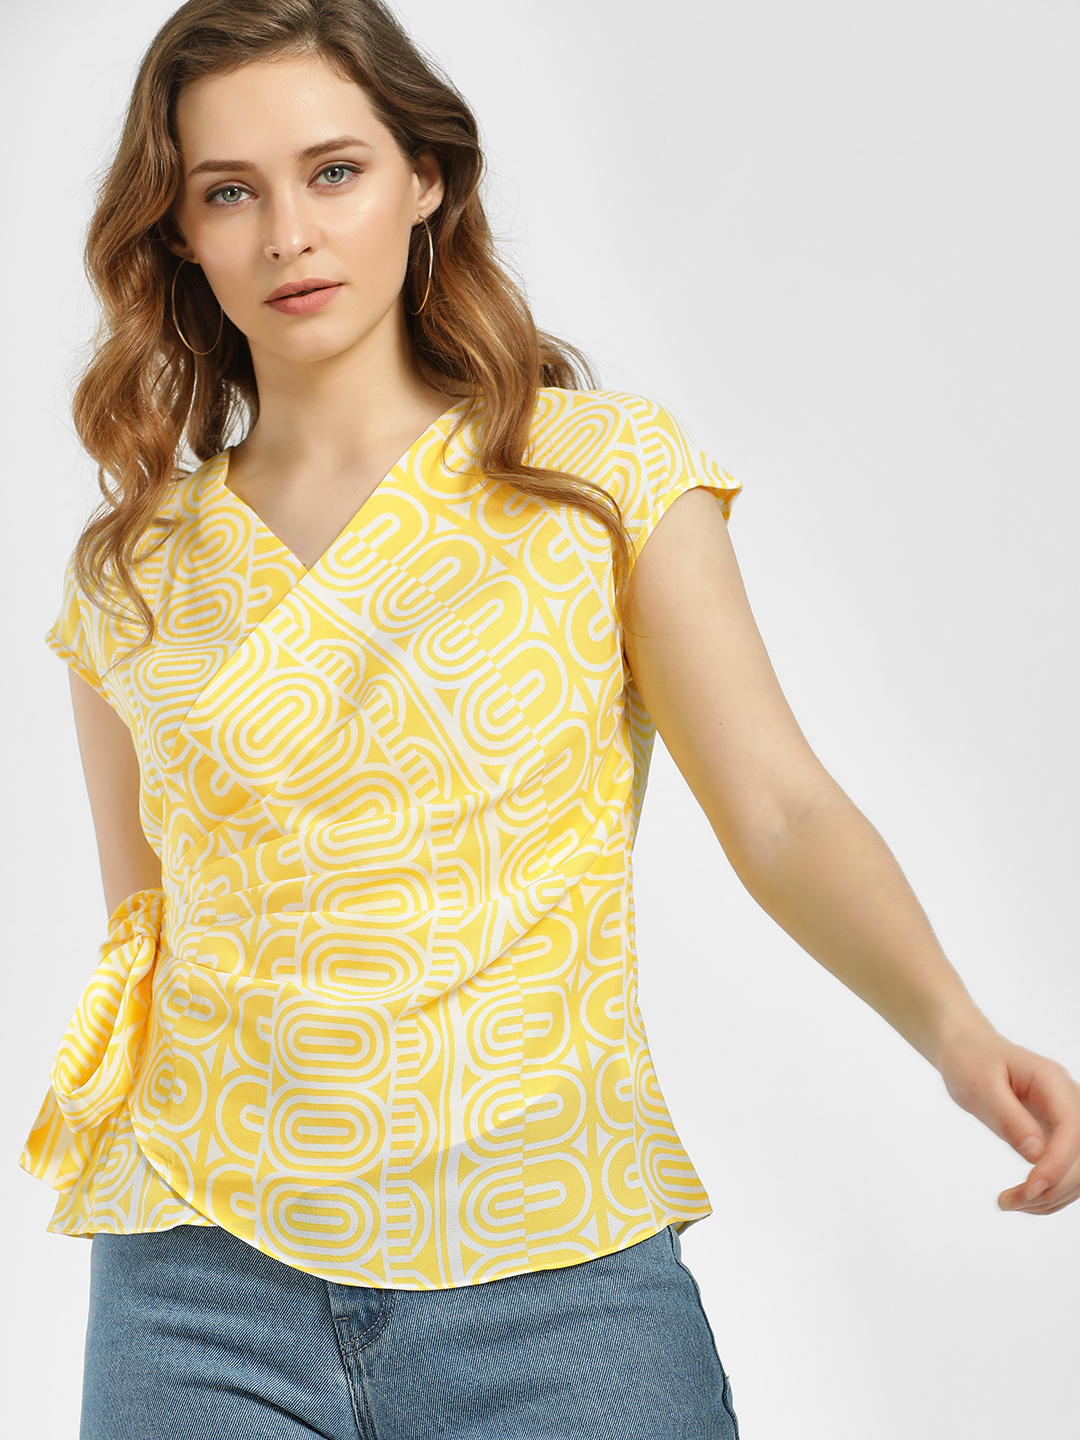 AND Yellow Geometric Print Side Tie-Up Top 1